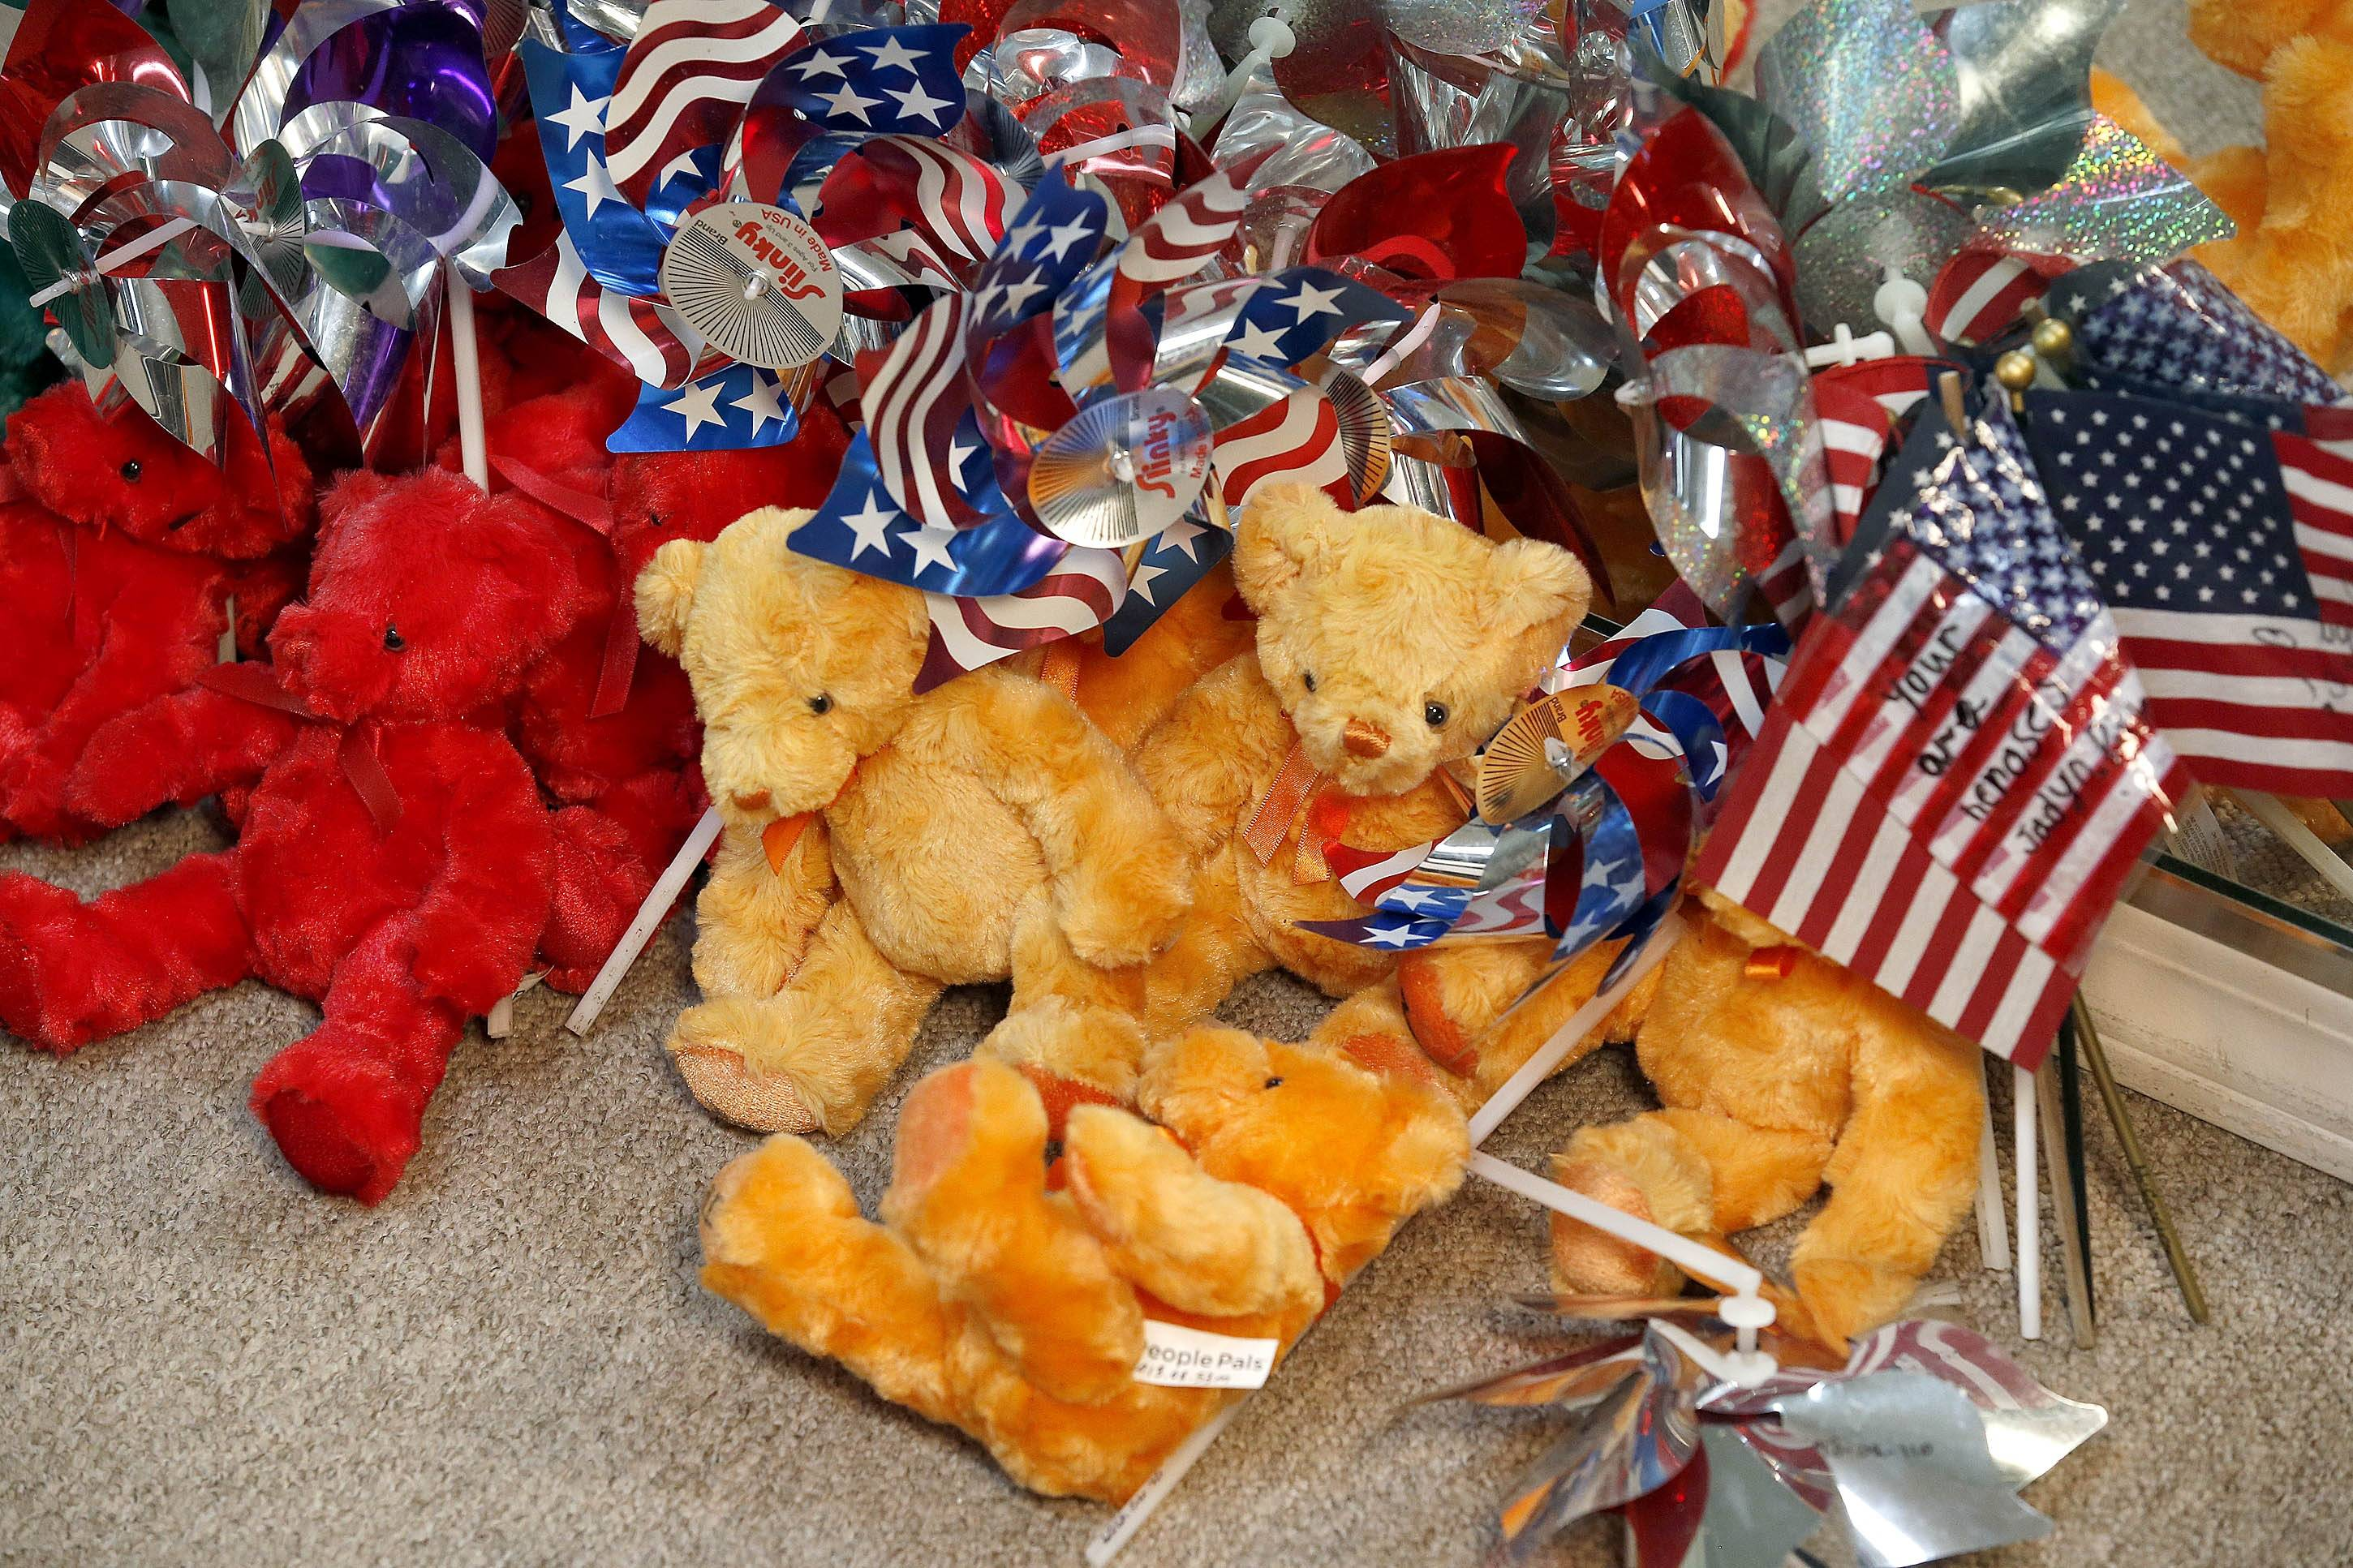 Just some of the dozens of teddy bears saved for the Tribute Fence Preservation Project honoring the 19 Granite Mountain Hotshots who were killed nearly a year ago fighting an Arizona wildfire on Tuesday, June 24, 2014, in Prescott, Ariz.